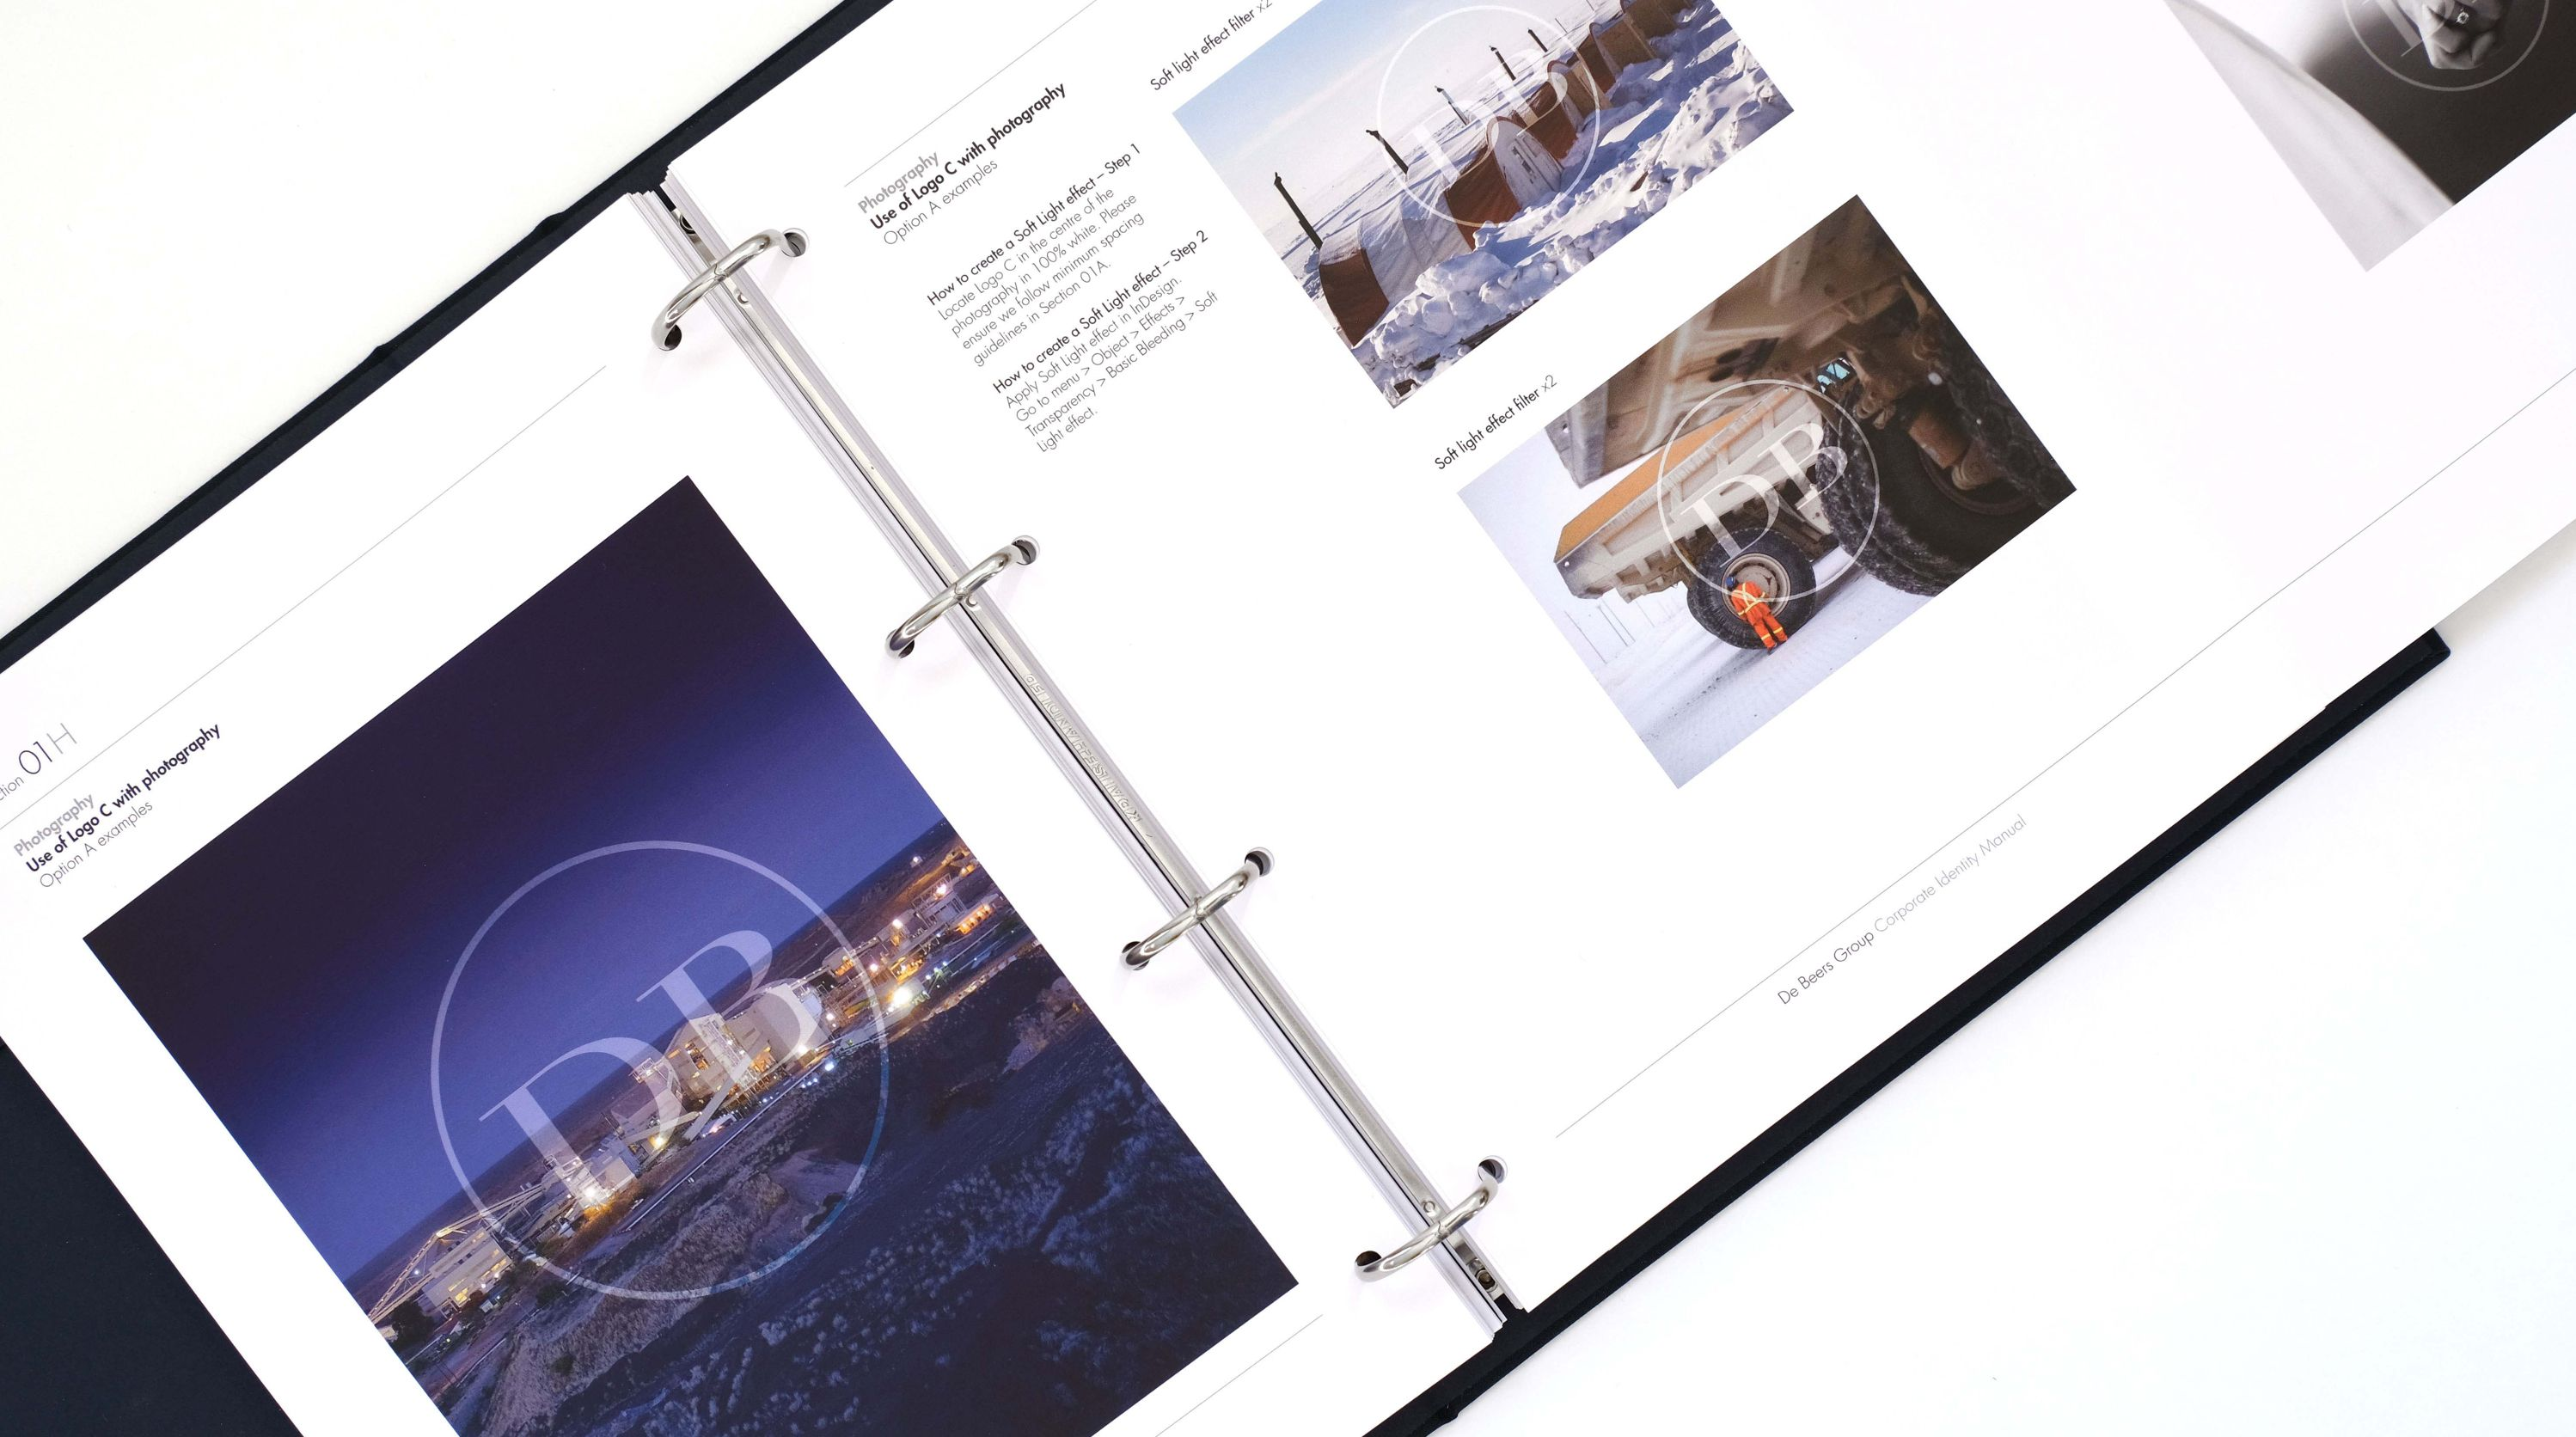 Looking inside the De Beers Group Corporate Identity Manual